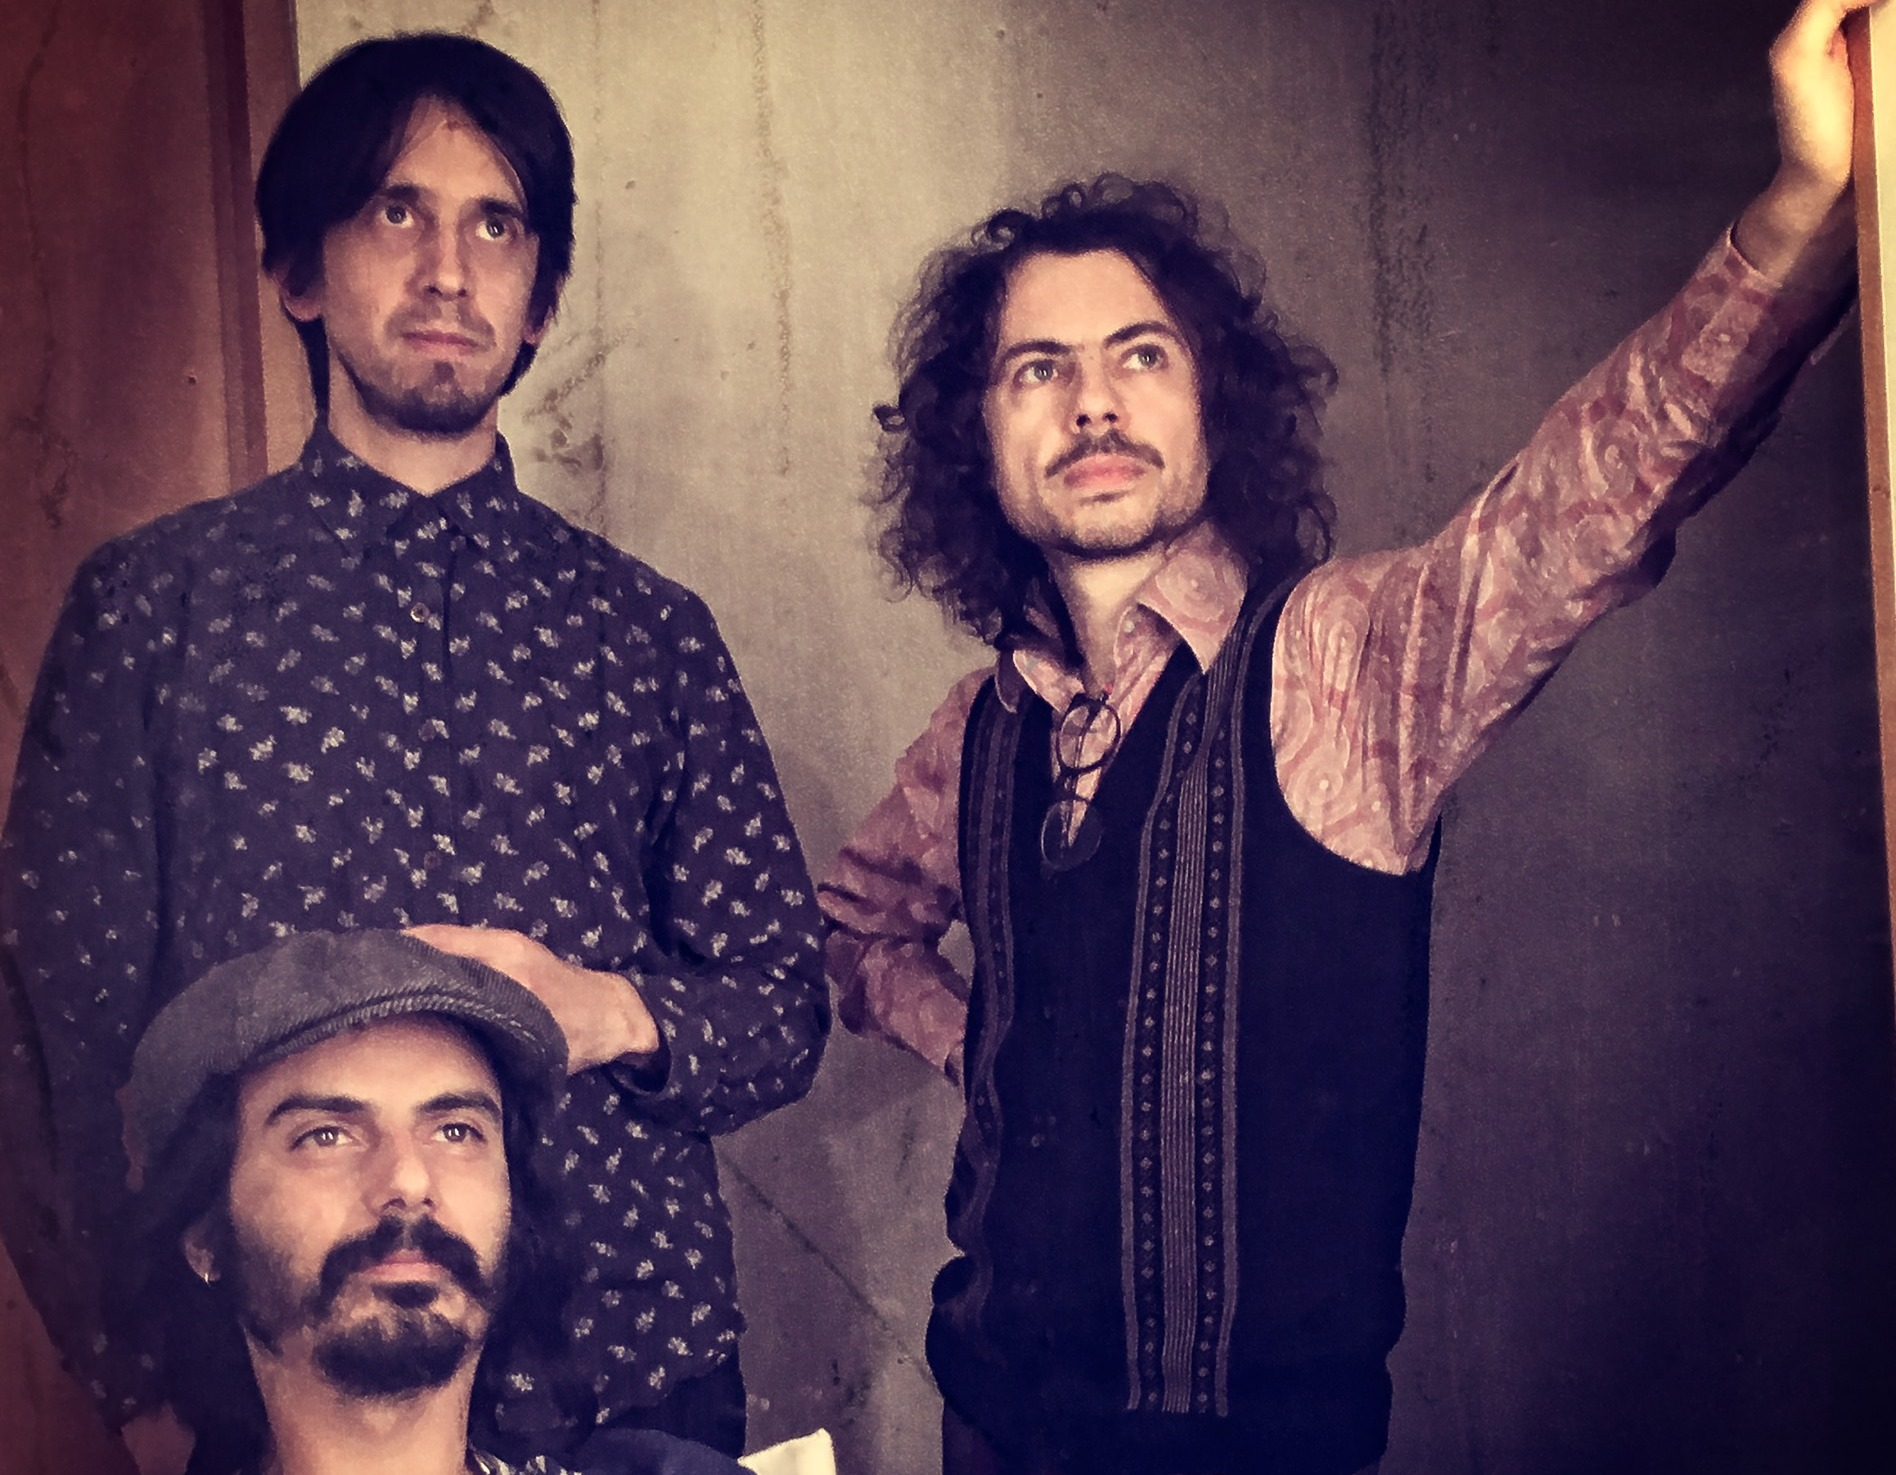 A complex musical conception of innovative art – We were listening to Trio Tekke's Strolivos